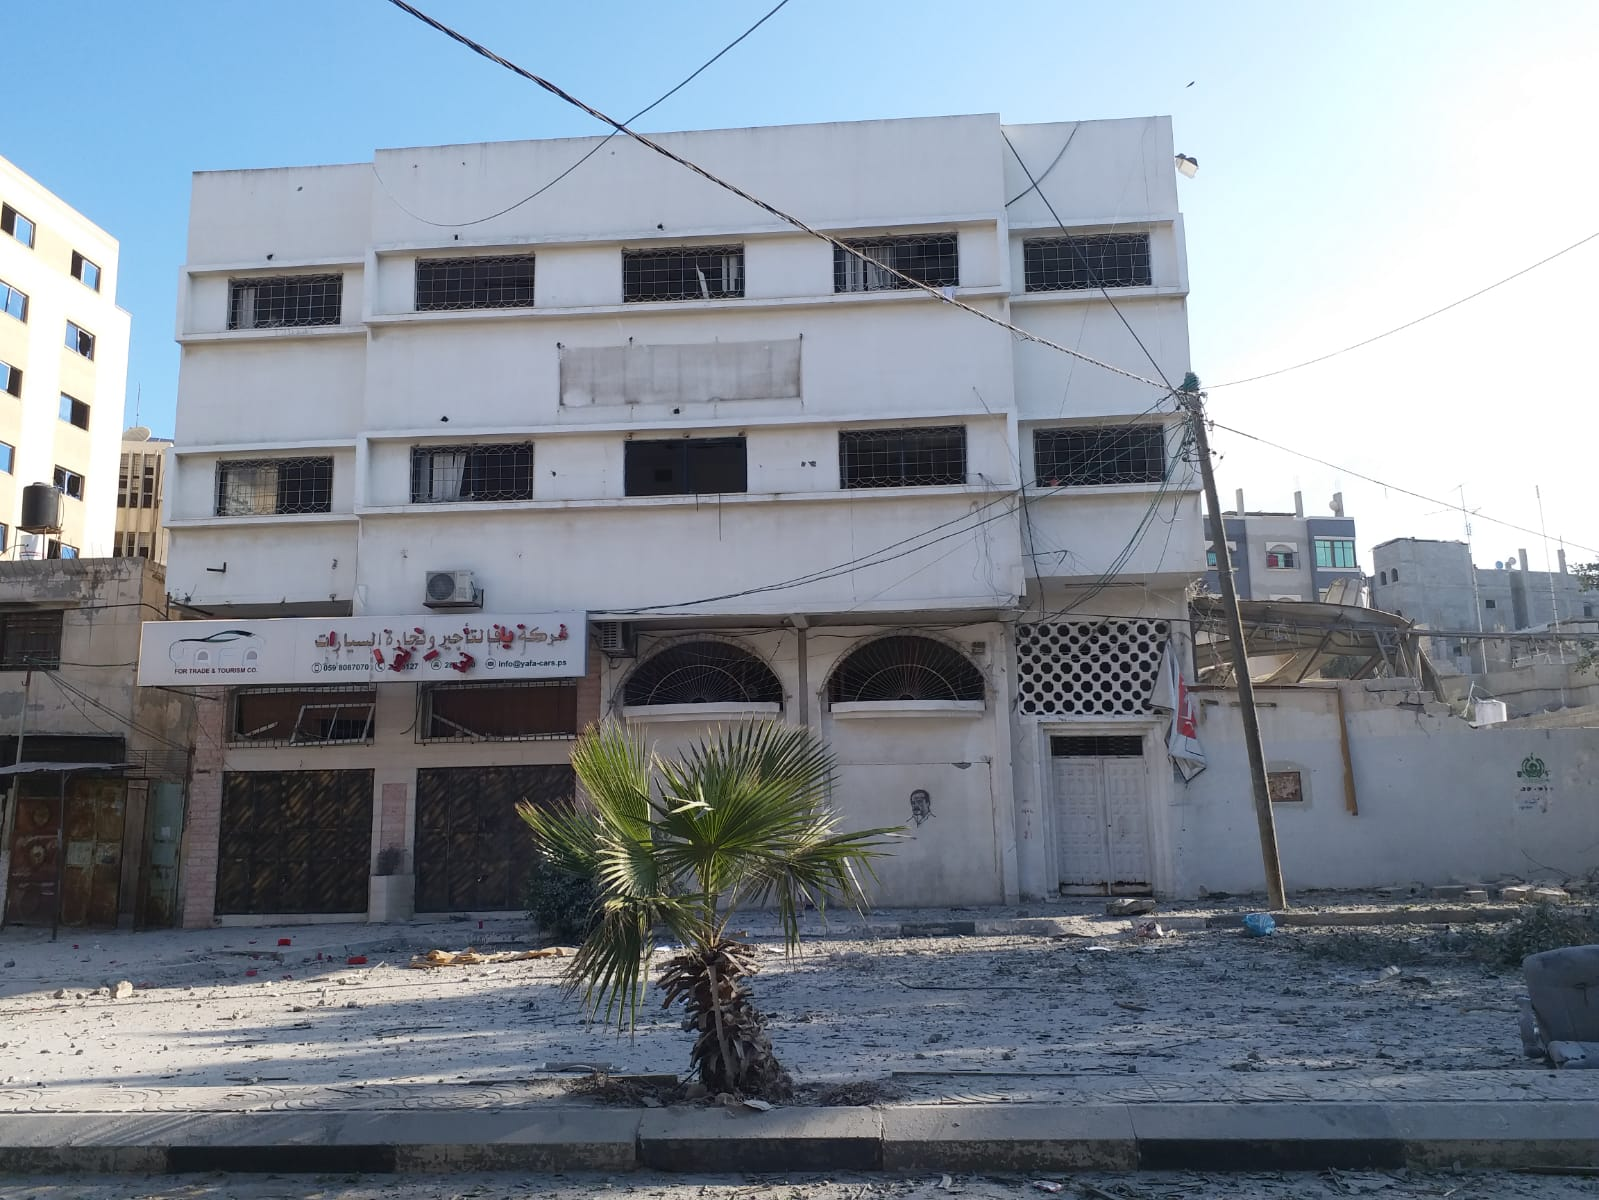 the former head office of the Palestinian Center for Human Rights (PCHR) Photos by: PCHR Field Workers